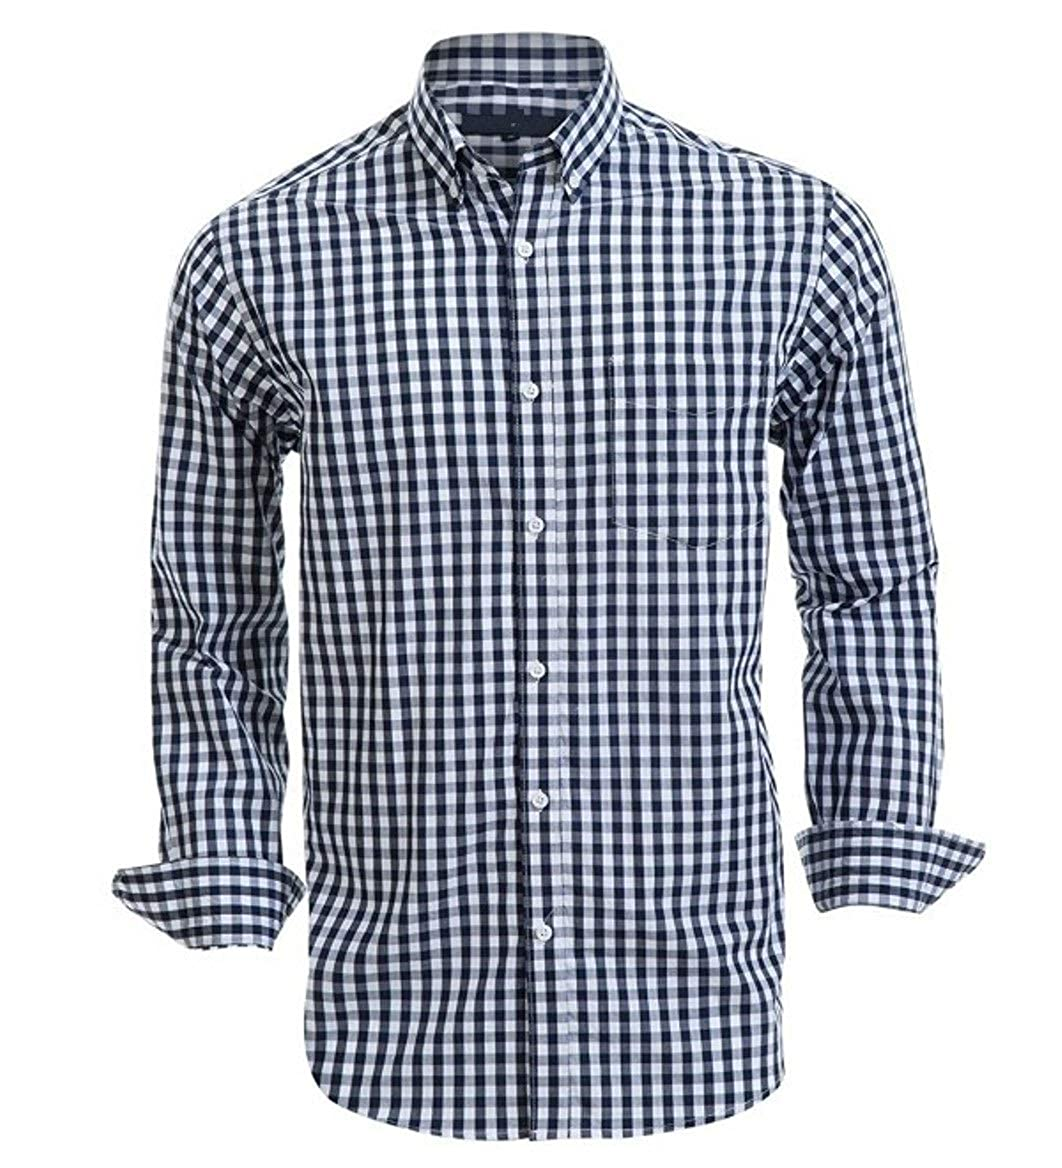 Croft /& Barrow Mens Classic Fit Casual Button Down Long Sleeve Shirt Navy Gingham